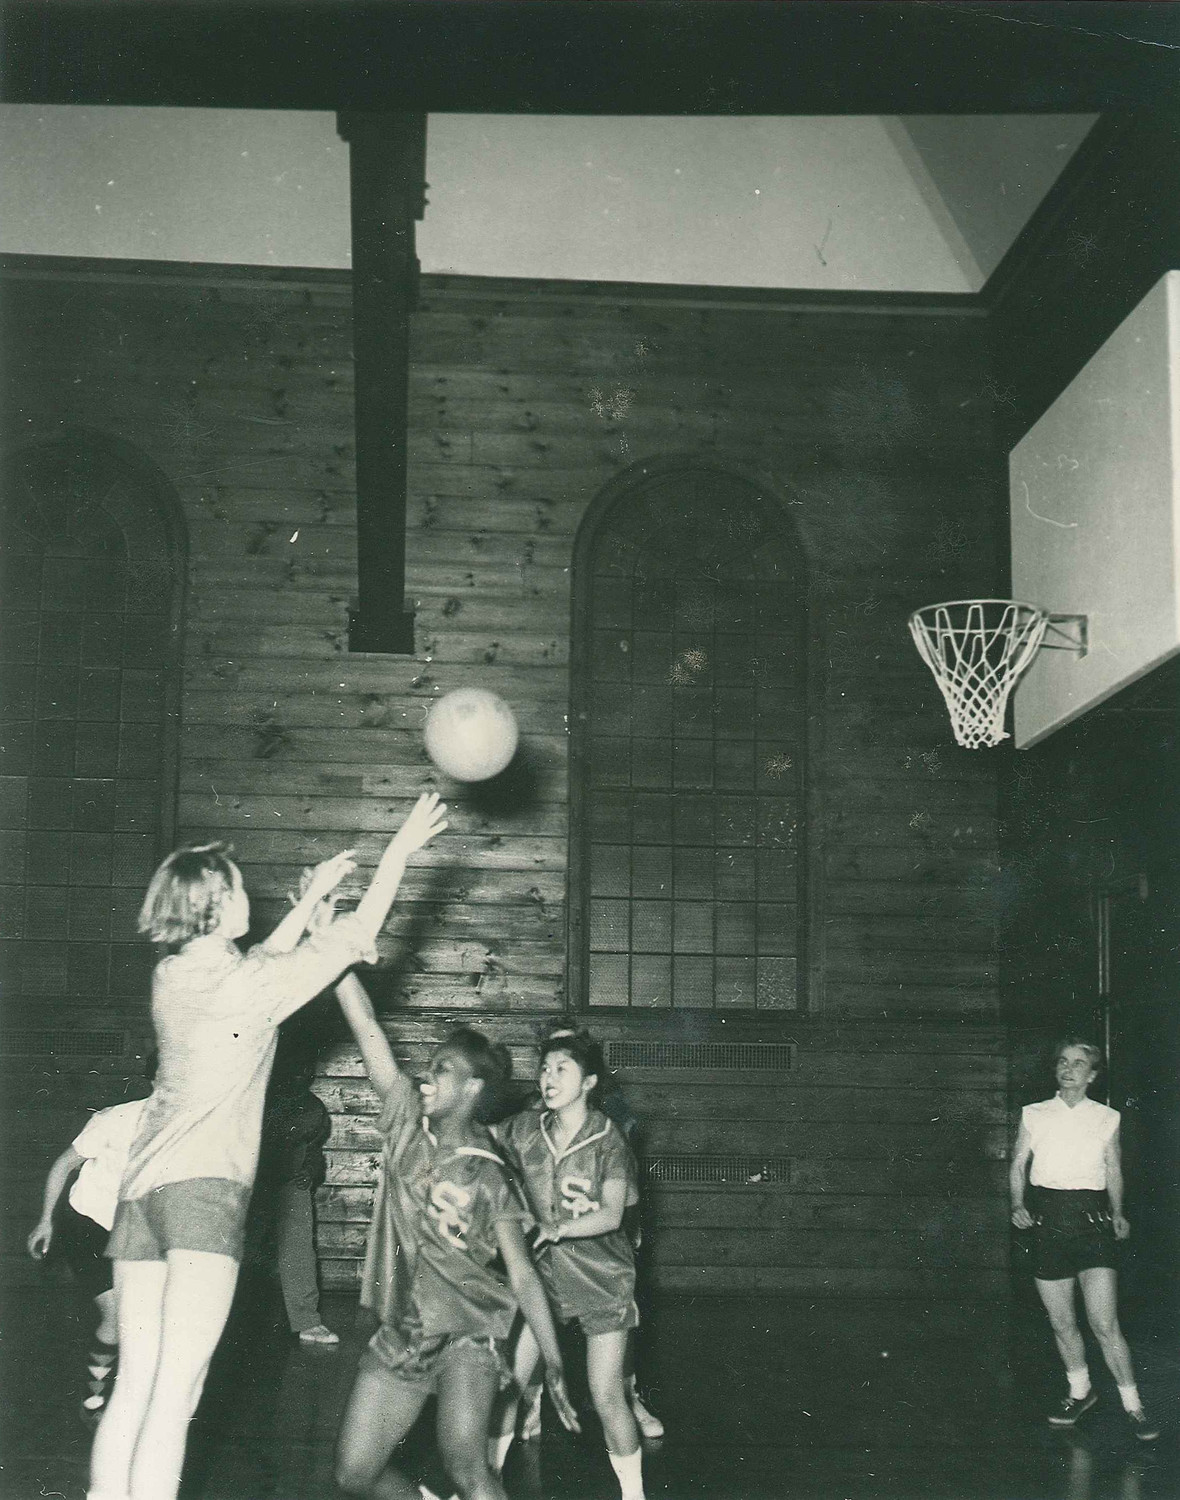 In the women's barracks, Kandel and fellow women Marines sometimes got the chance to play basketball.